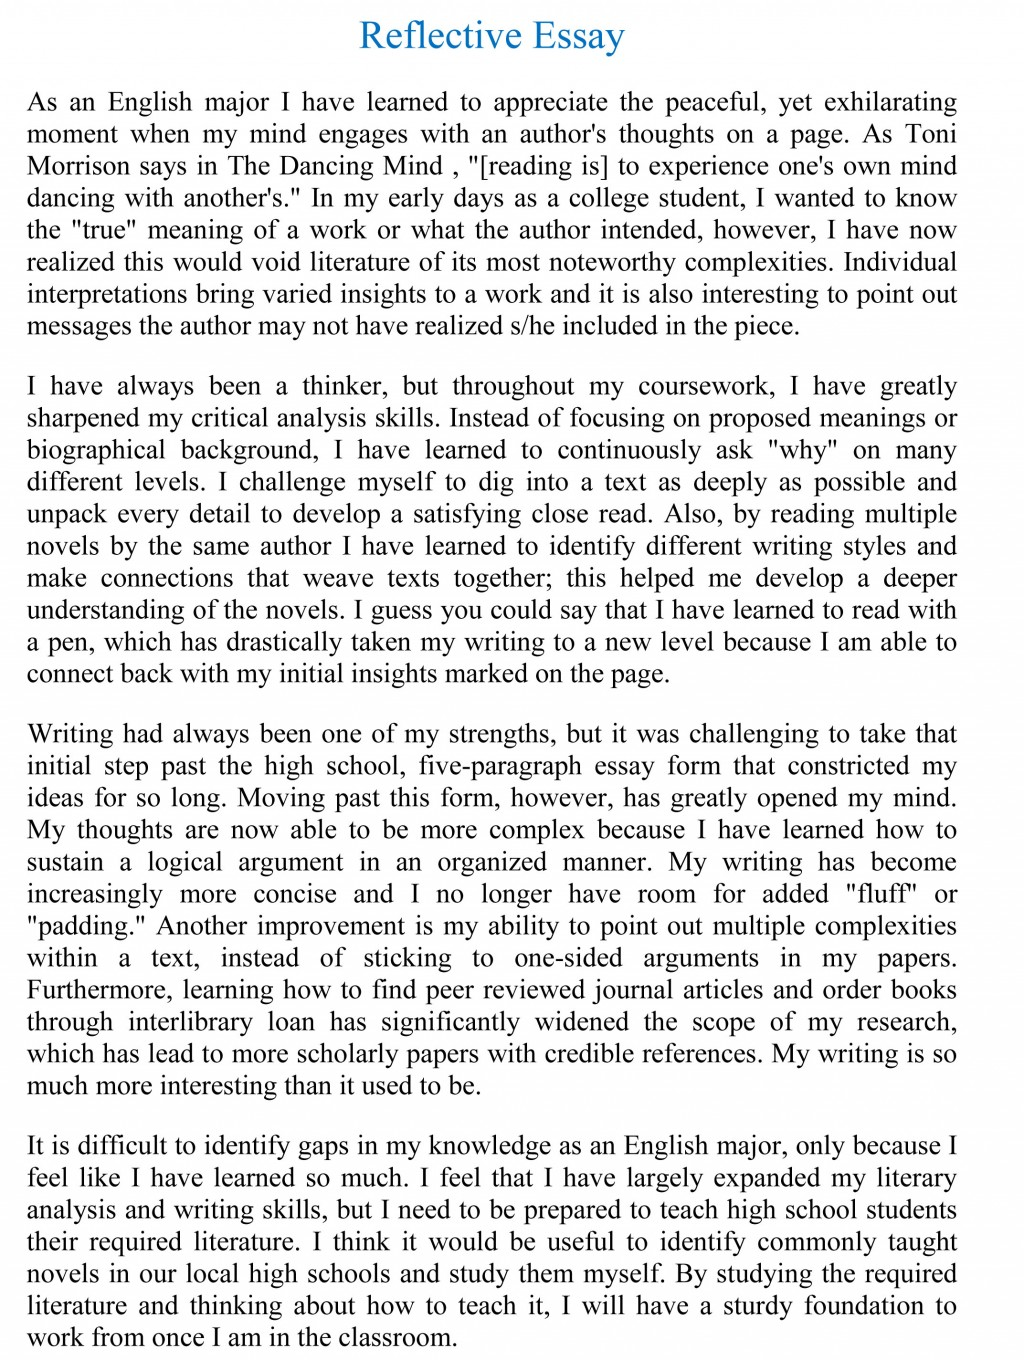 014 Essay Example Write My Free Online Reflective Remarkable Research Paper For Me Large